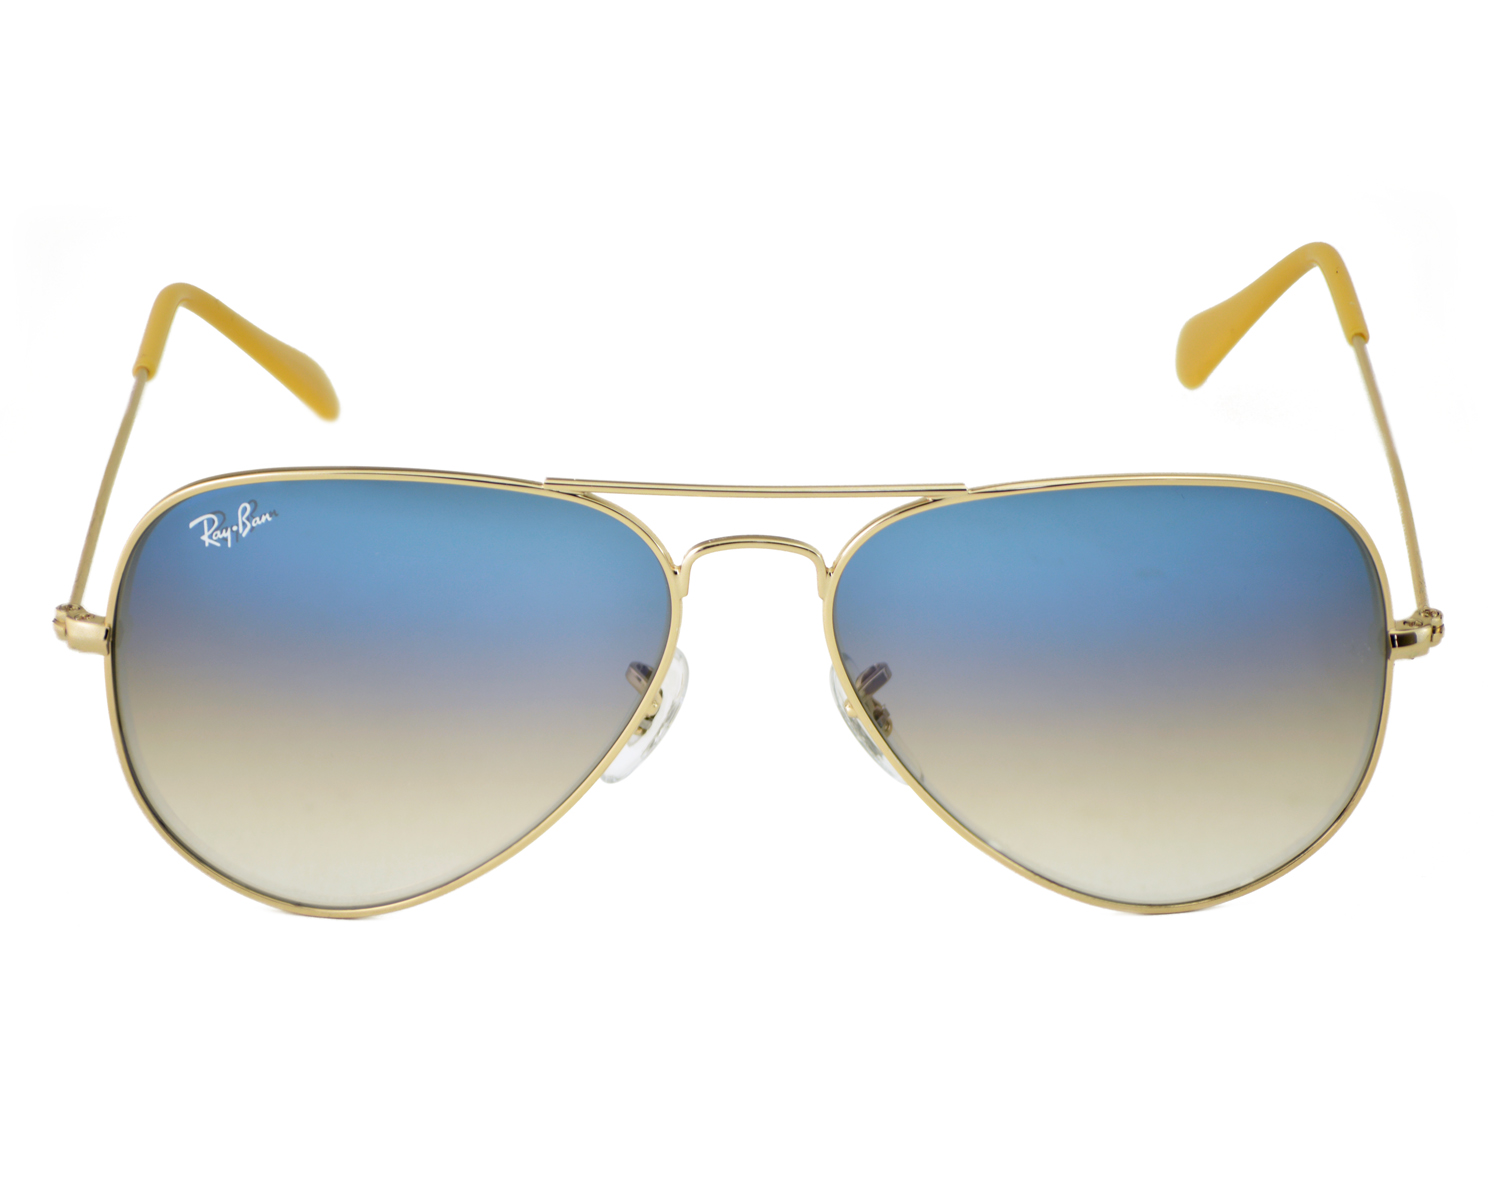 6347593415e2 Ray-Ban RB3025 Aviator Gradient 001/3F Gold Frame/Light Blue Gradient Lenses  Unisex Sunglasses 58mm